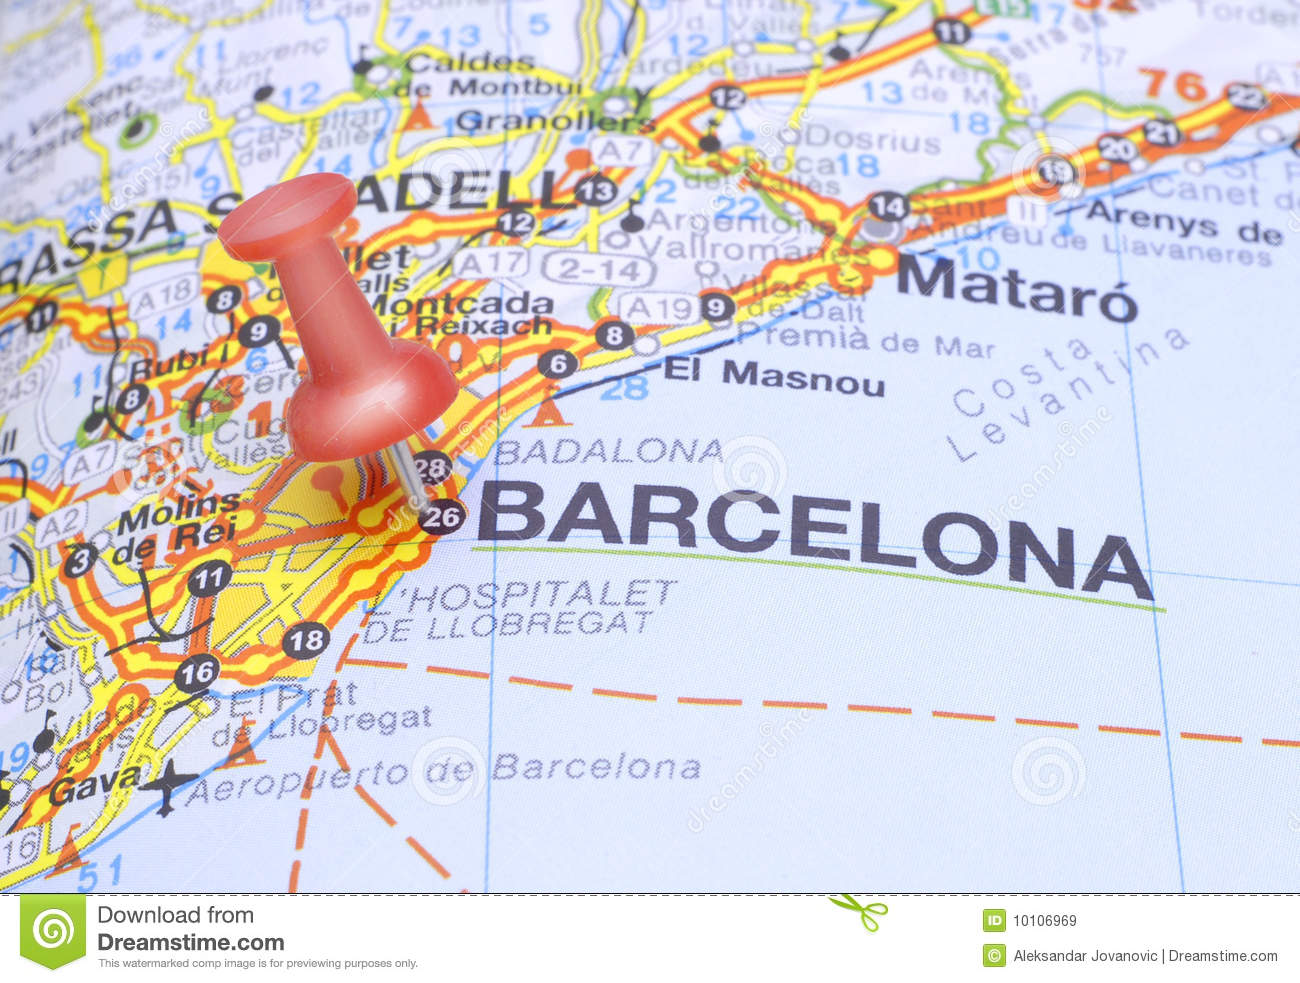 Map Of Spain With Barcelona.Destination Barcelona On The Map Of Spain Stock Image Image Of